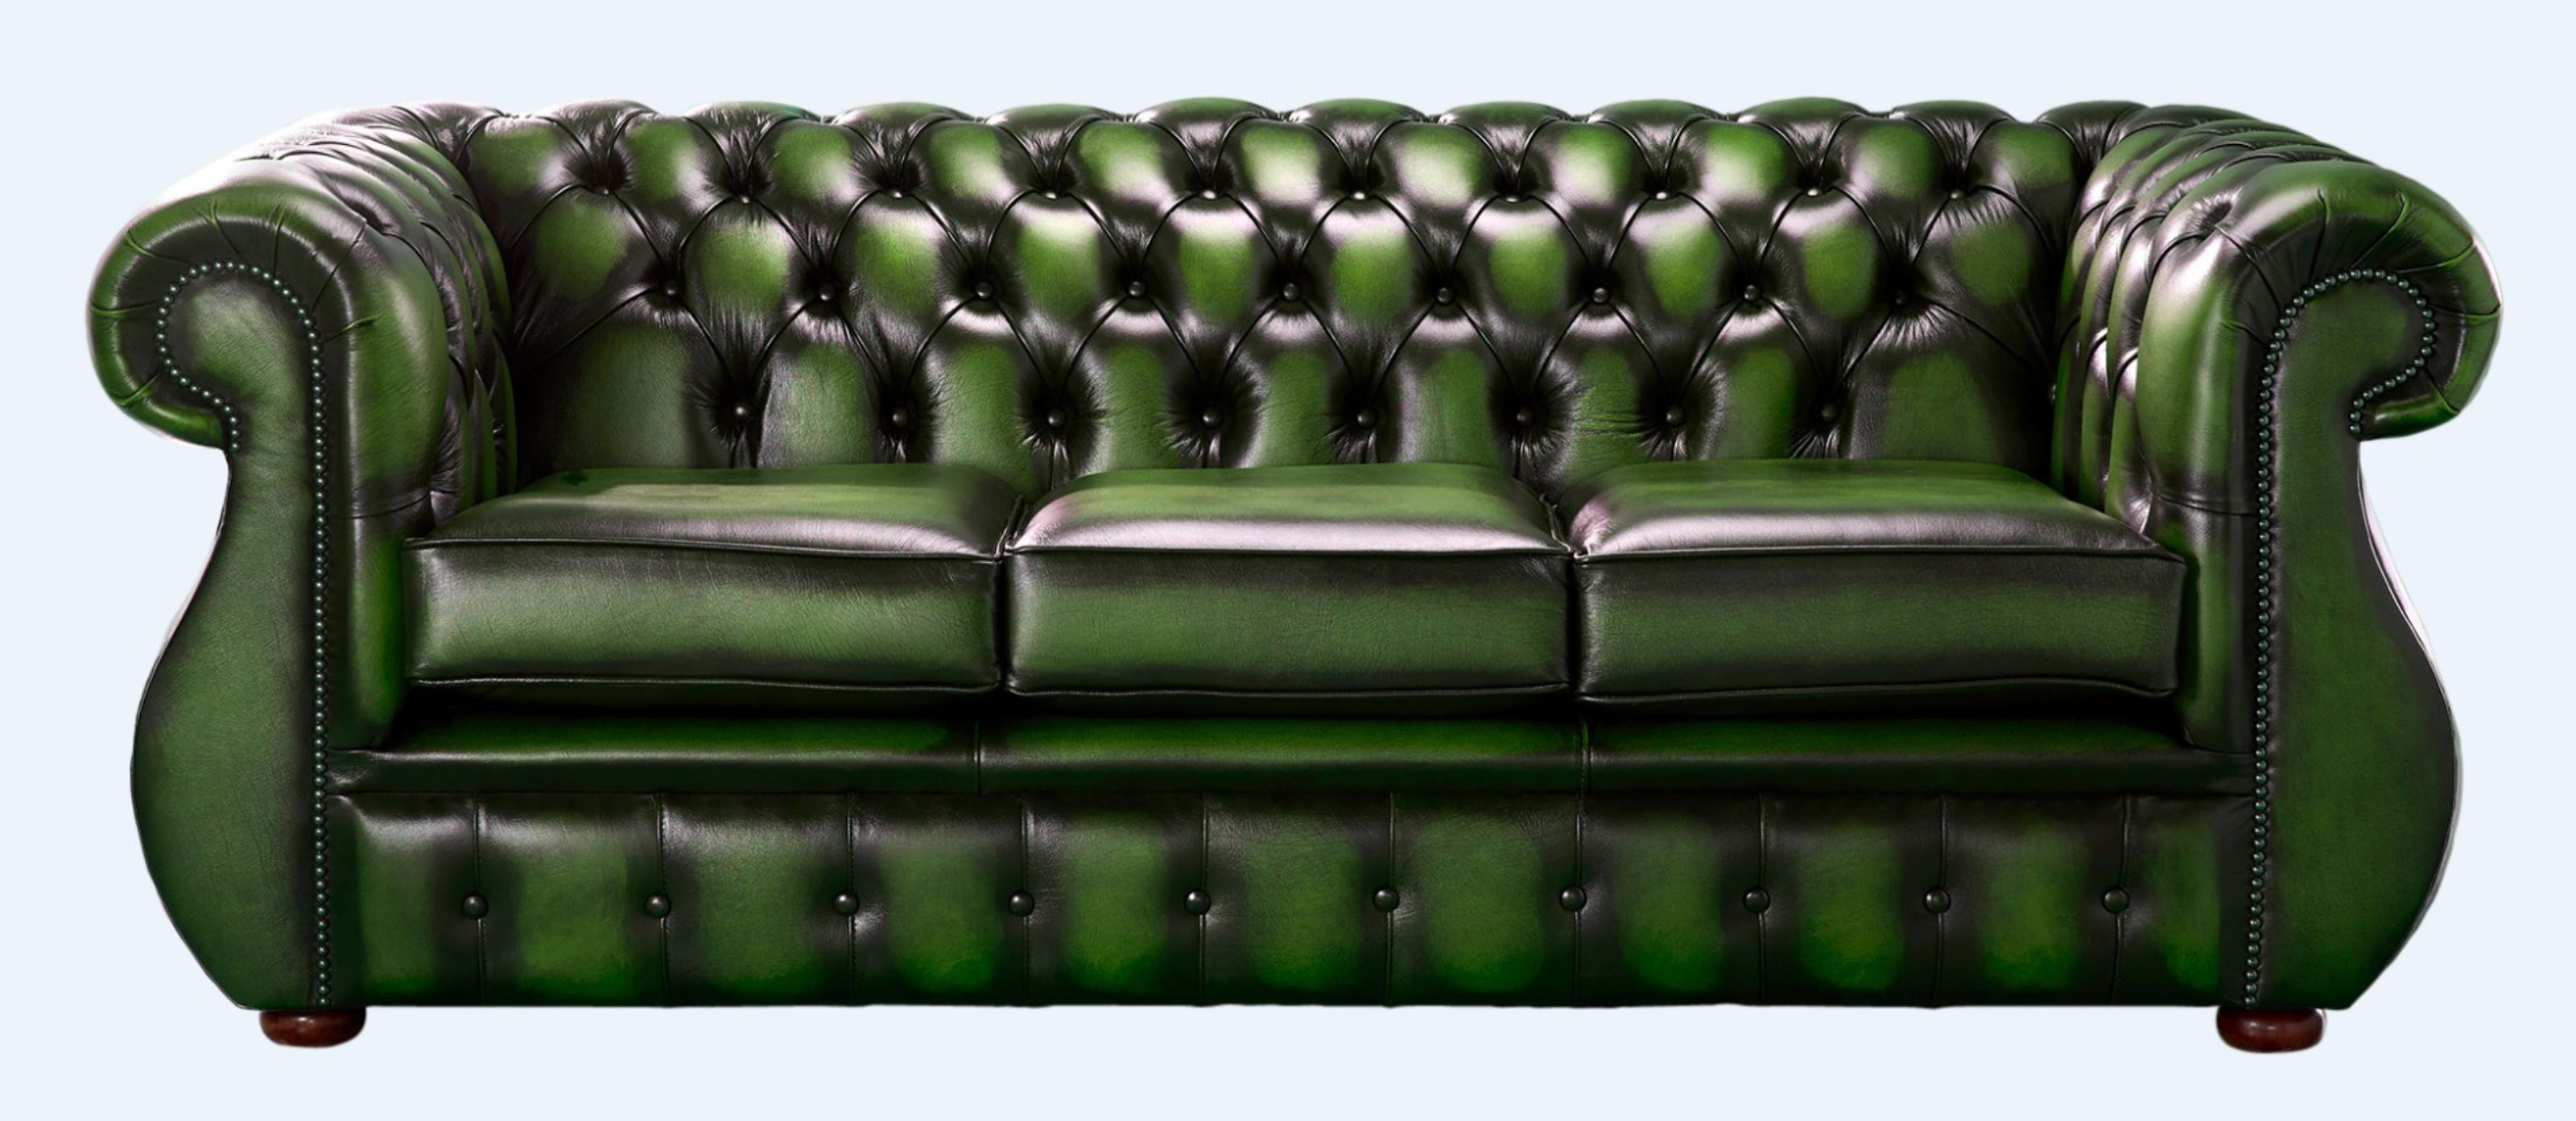 - Green Leather Chesterfield 3 Seater Sofa DesignerSofas4U